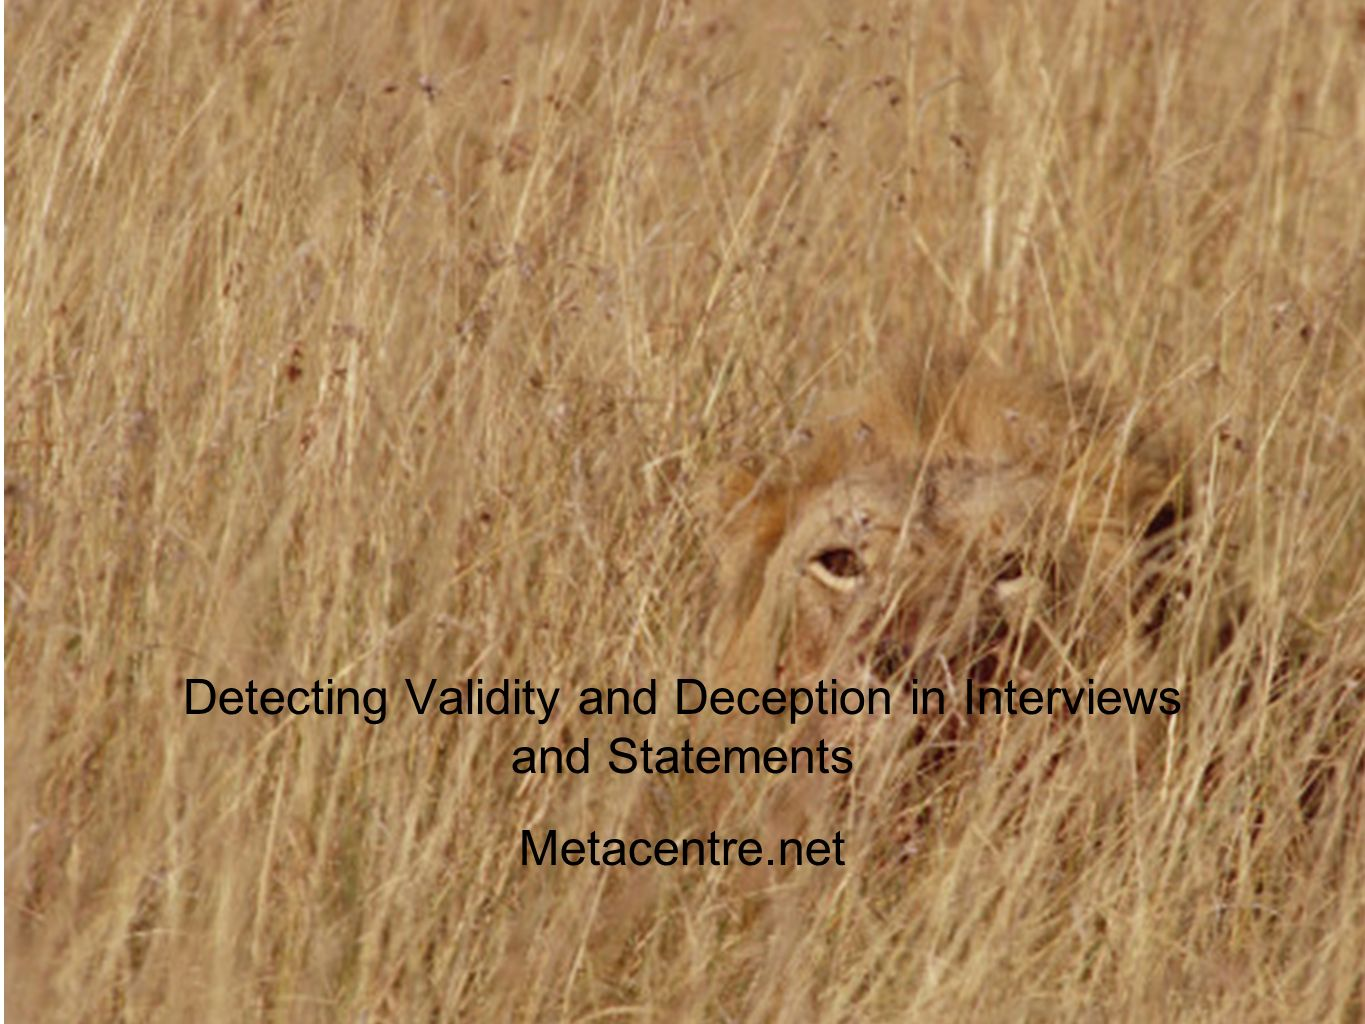 Detecting Validity and Deception in Interviews and Statements